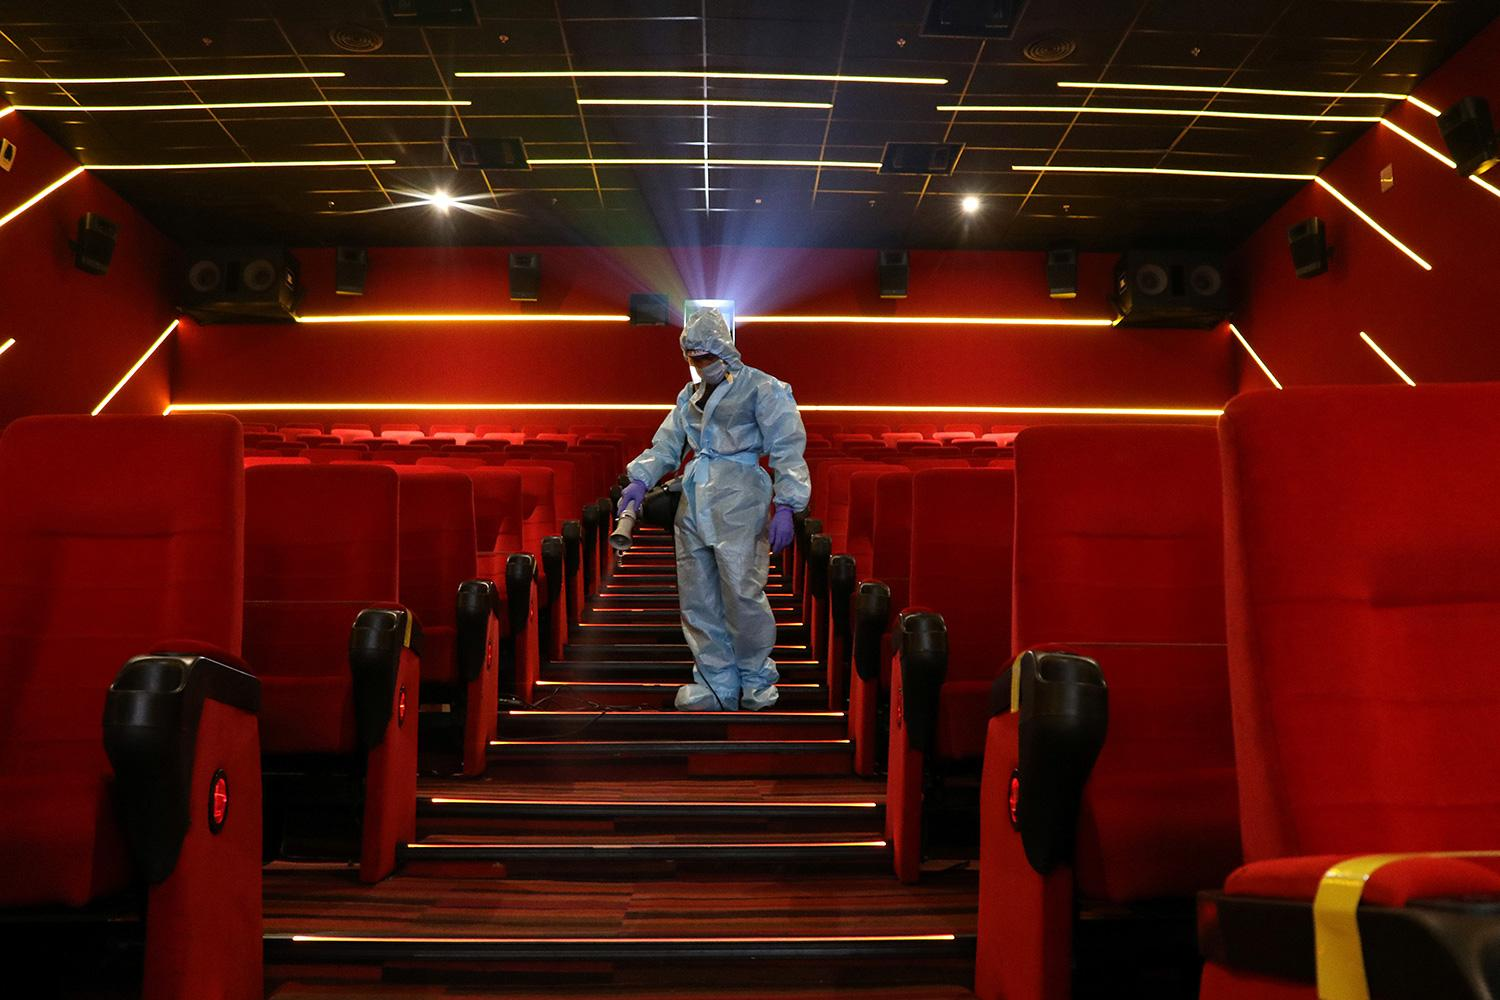 Addressing pandemic preparedness after COVID-19 will require going deeper than the surface. Here a worker sanitizes surfaces inside the Inox Leisure movie theatre in Mumbai, India, October 13, 2020. The photo is striking, showing a worker spraying disinfectant wearing a blue suit descending down a theater staircase where all the seats and carpet are bright red. REUTERS/Niharika Kulkarni